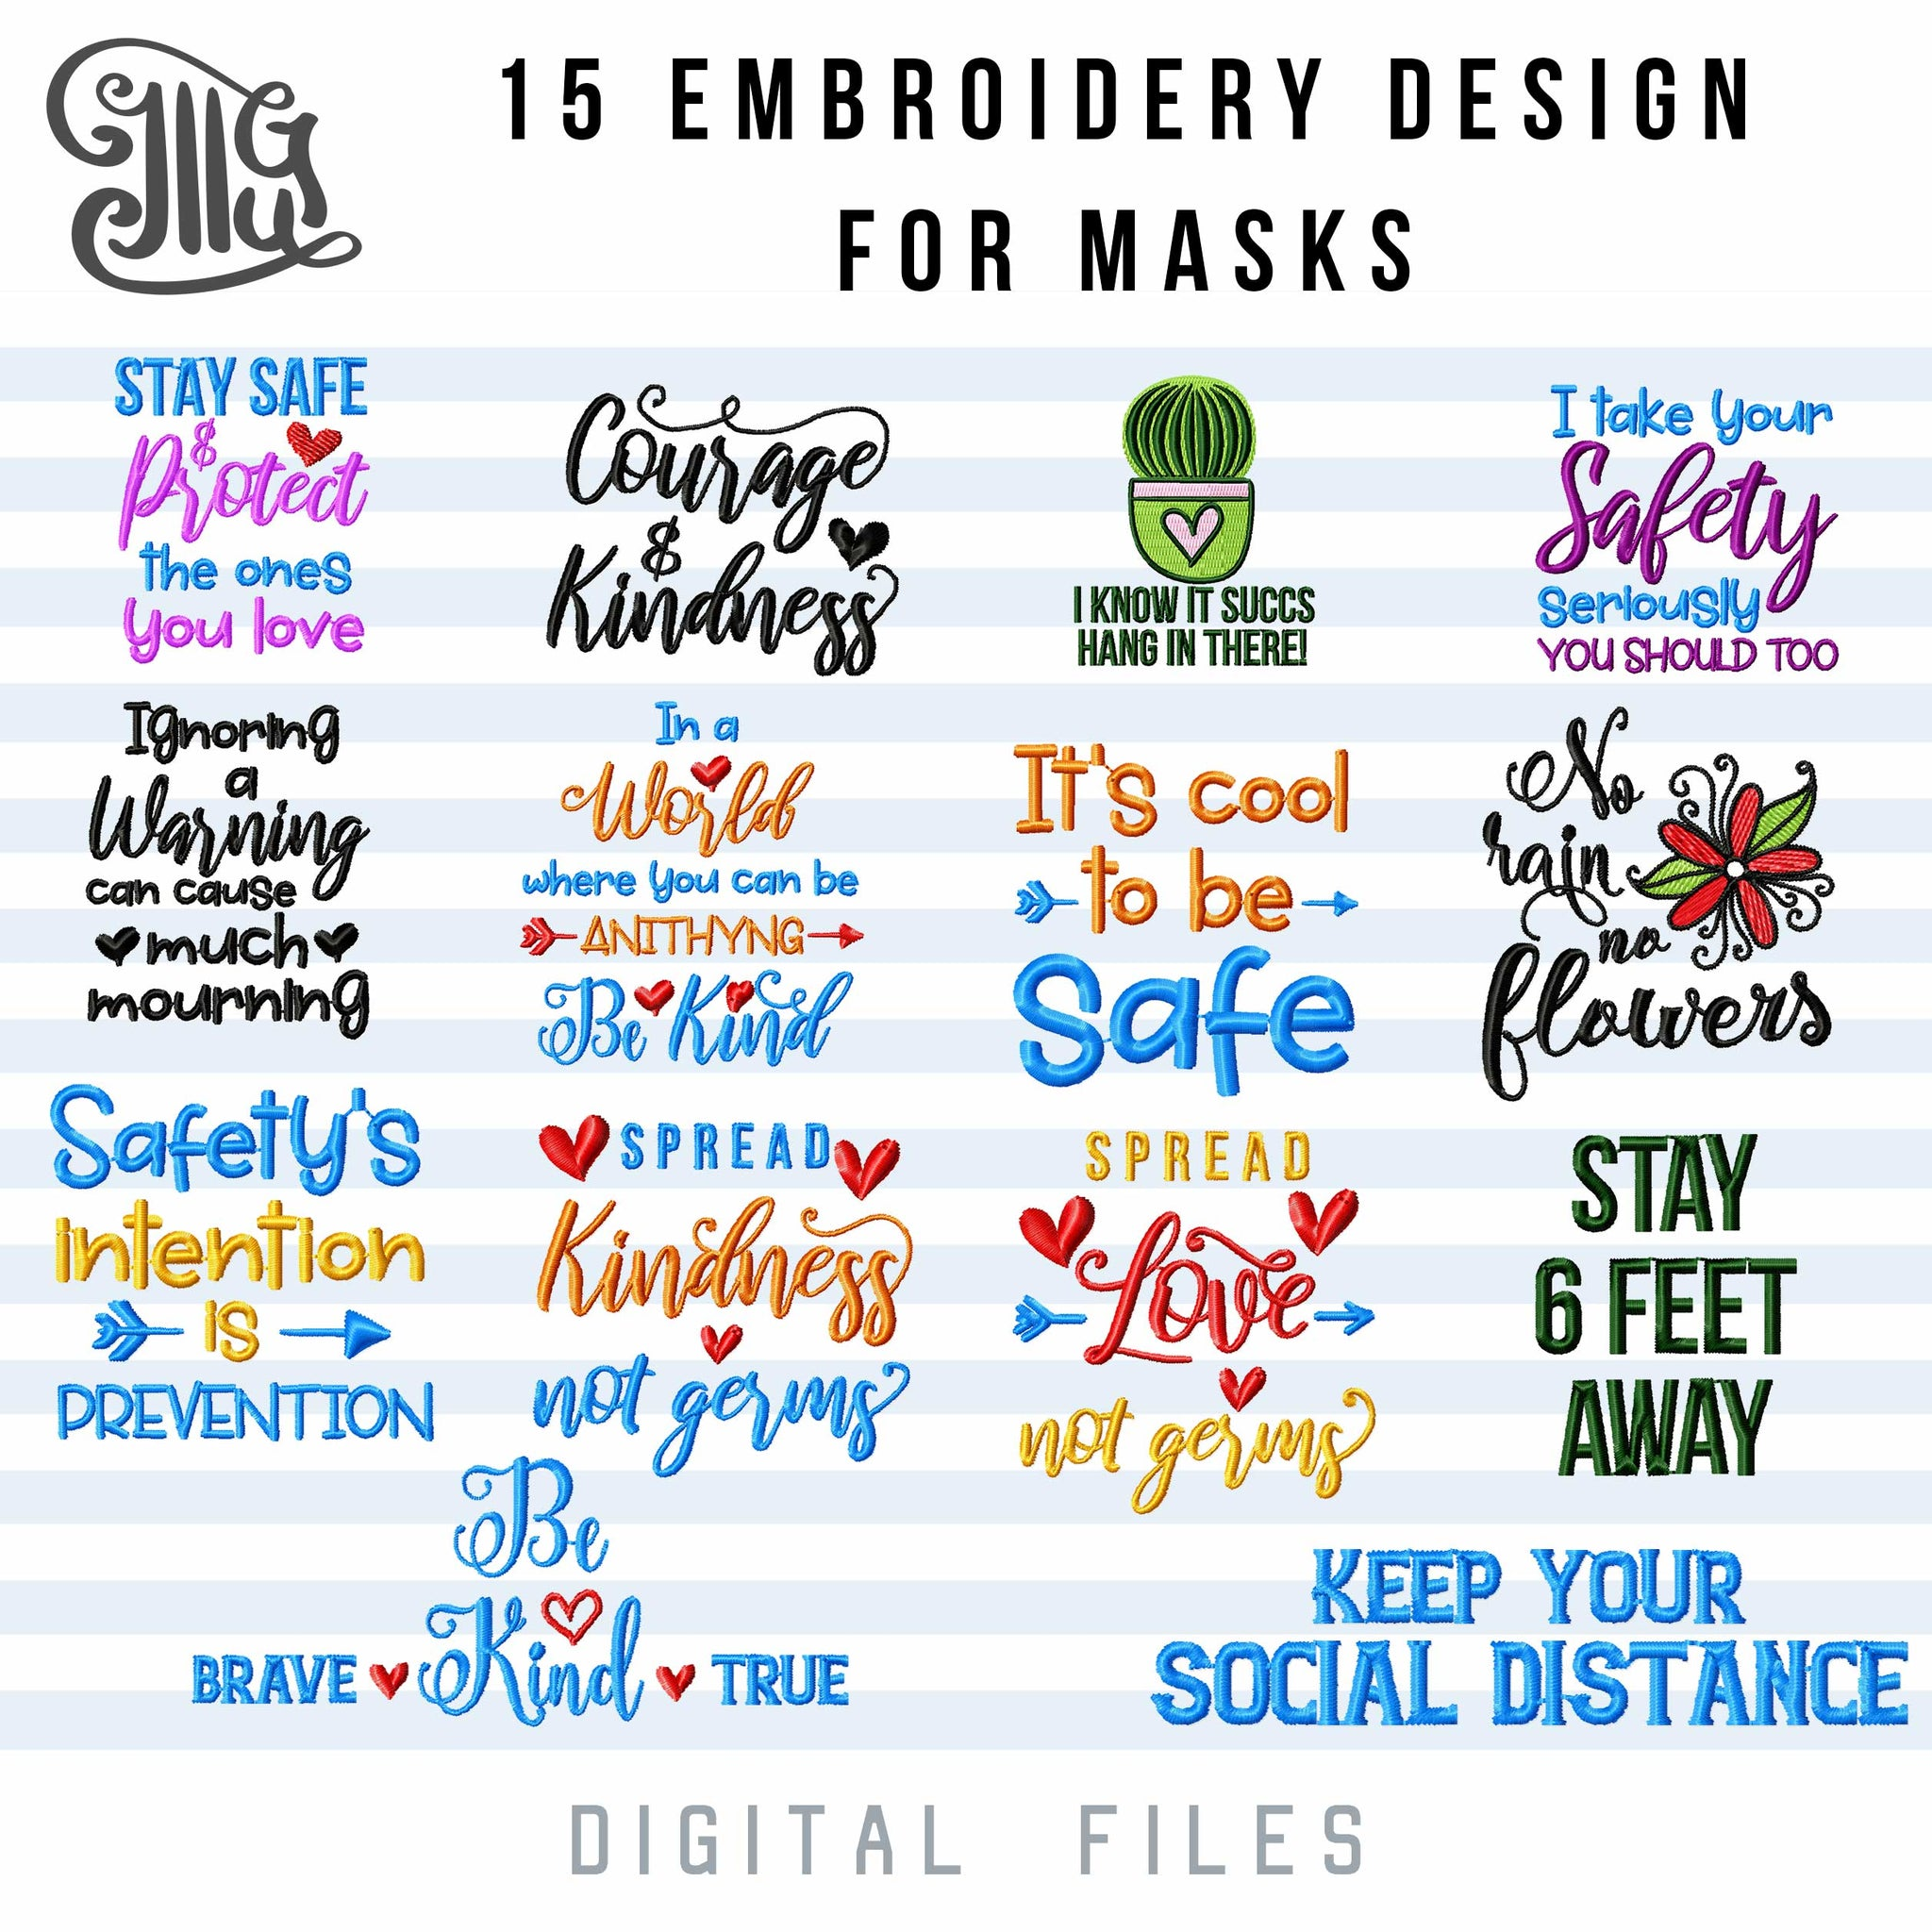 Face Masks Embroidery Designs Mouth Masks Sayings Embroidery Pattern Illustrator Guru